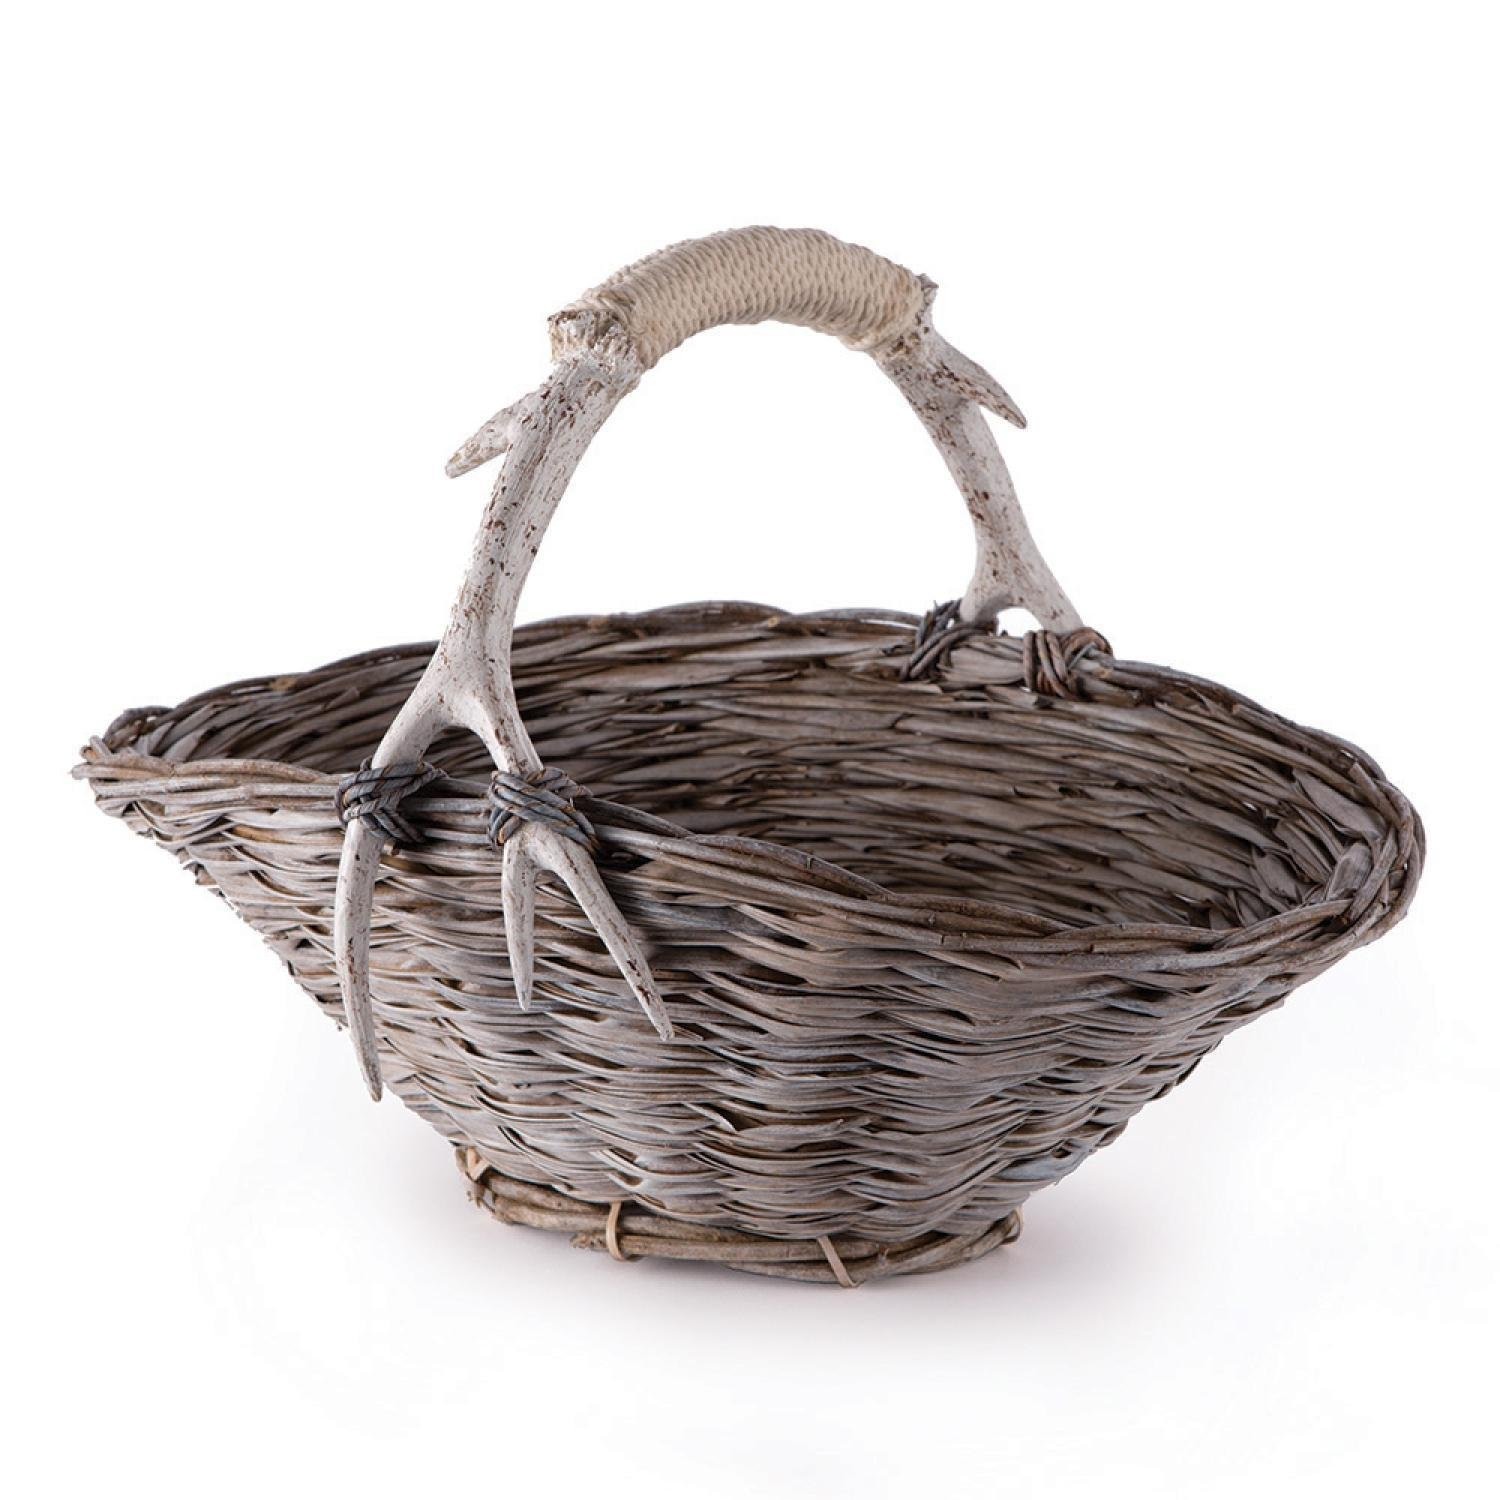 CC Home Furnishings Weathered Gray and Beige Faux Antler and Rope Wrapped Handle Hand Woven Flower Basket